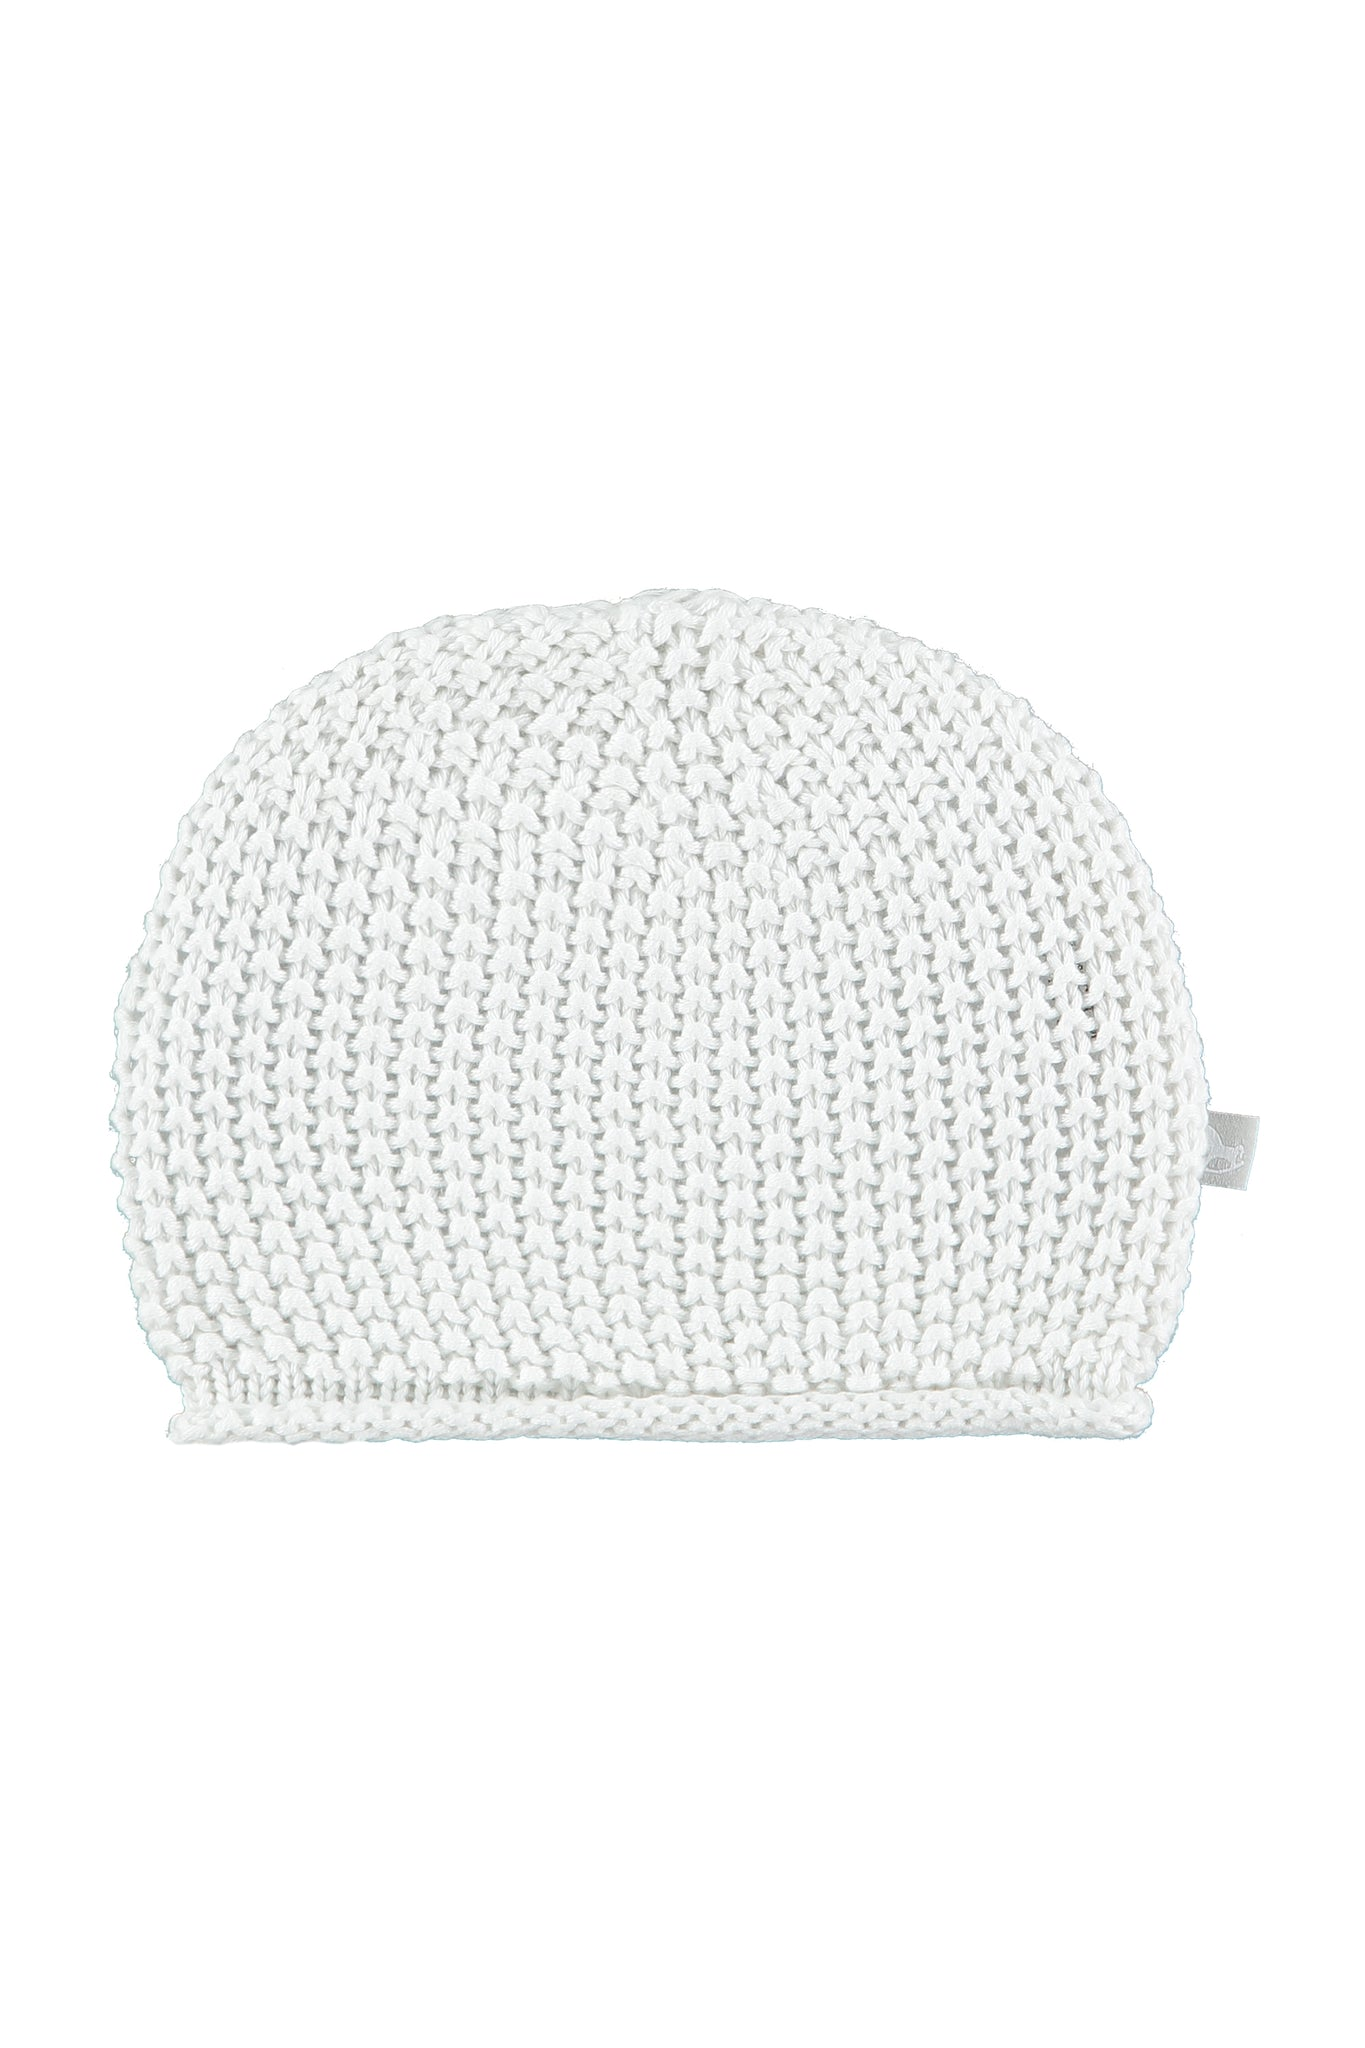 White Cotton Knitted Hat